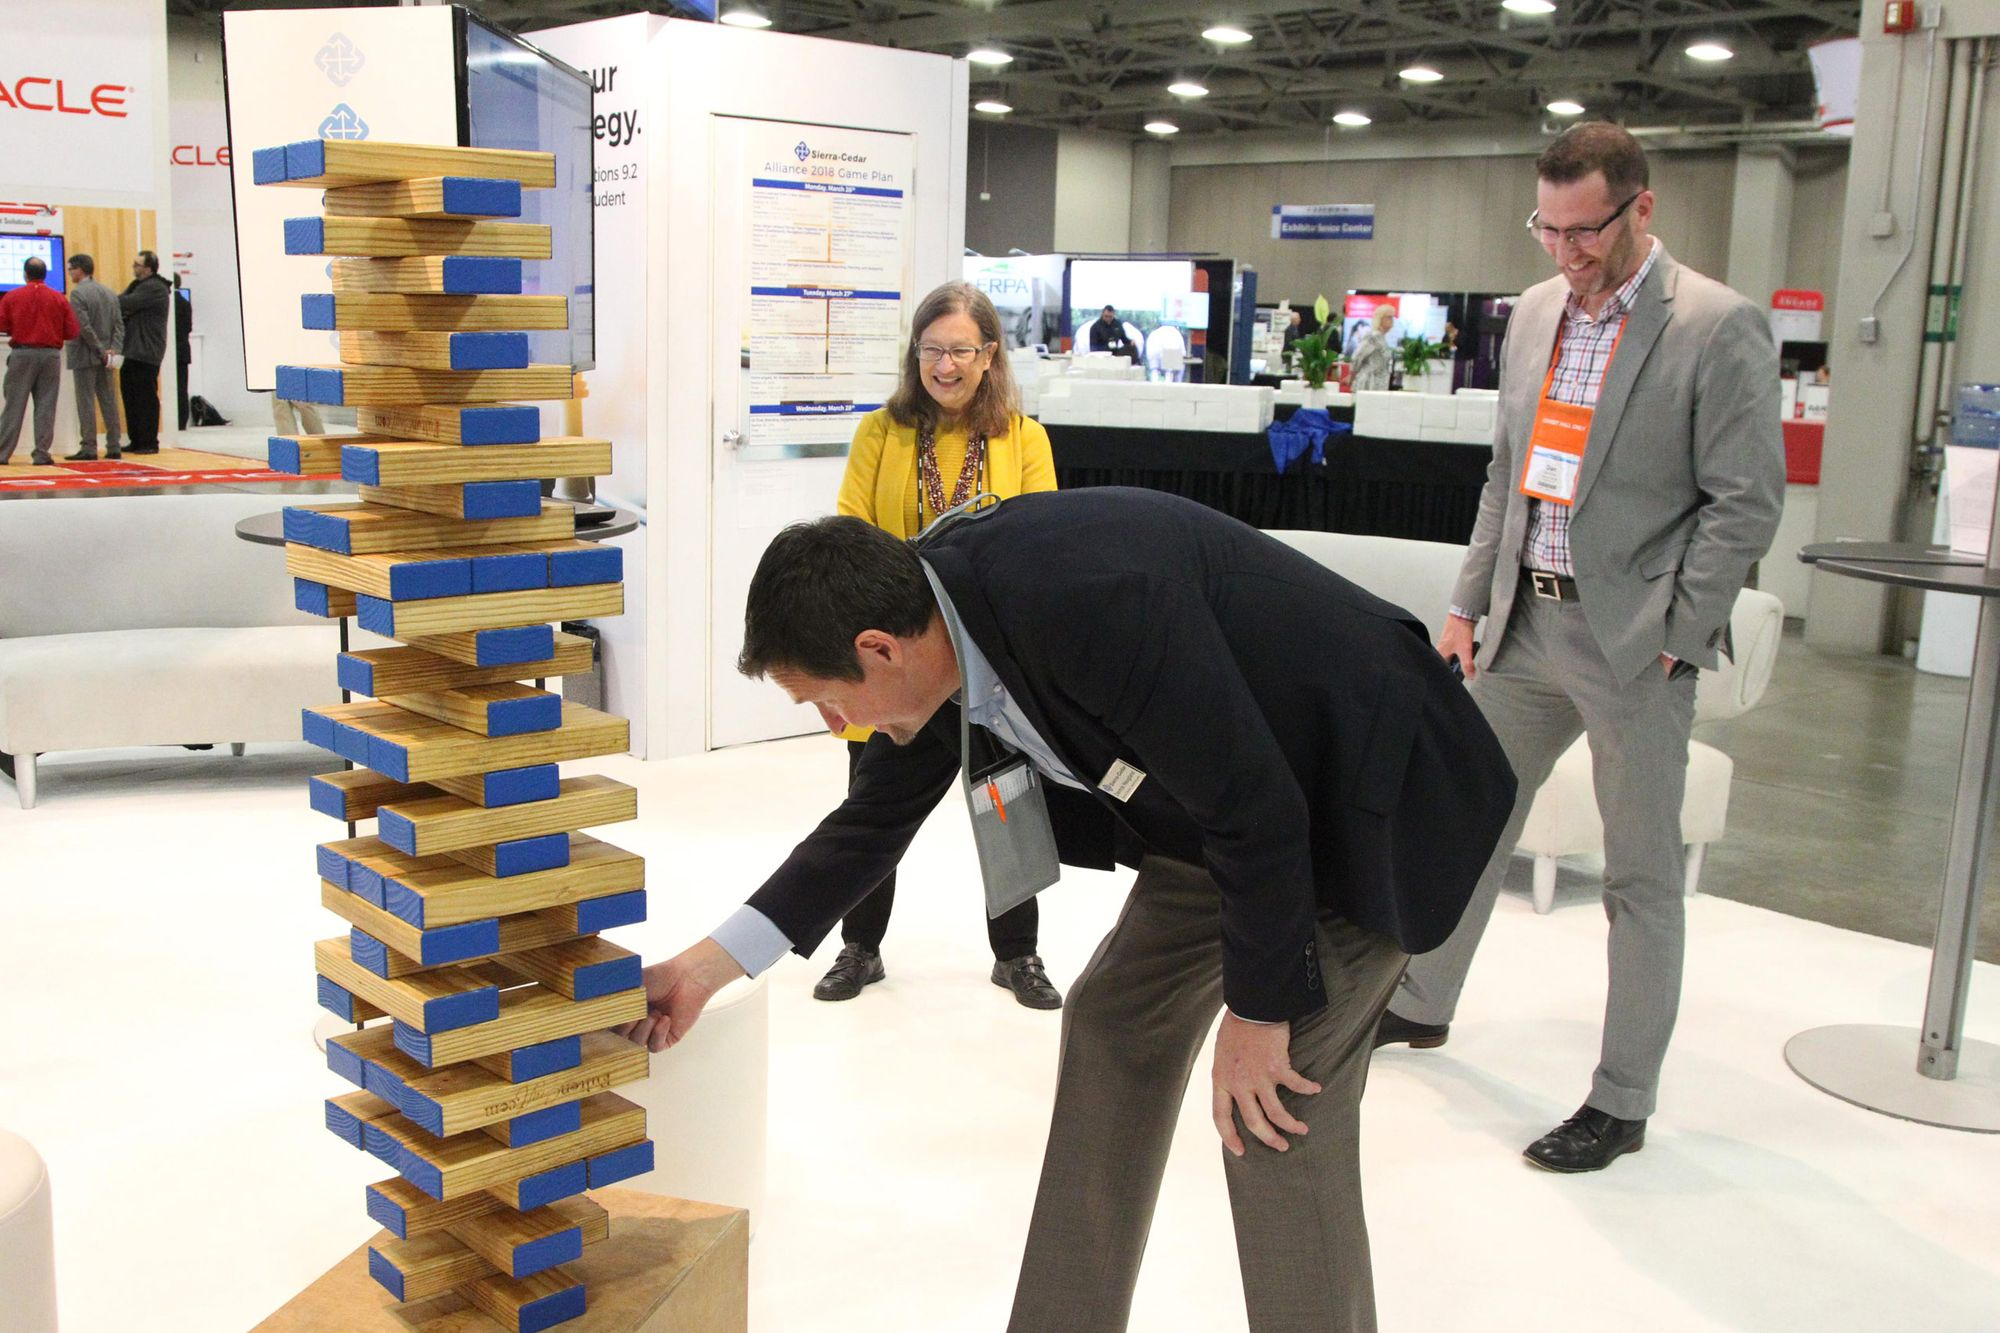 Higher_Education_User_Group_2018_Salt_Palace_Convention_Center_Salt_Lake_City_Utah_Exhibitor_Area_Giant_Jenga!.jpg